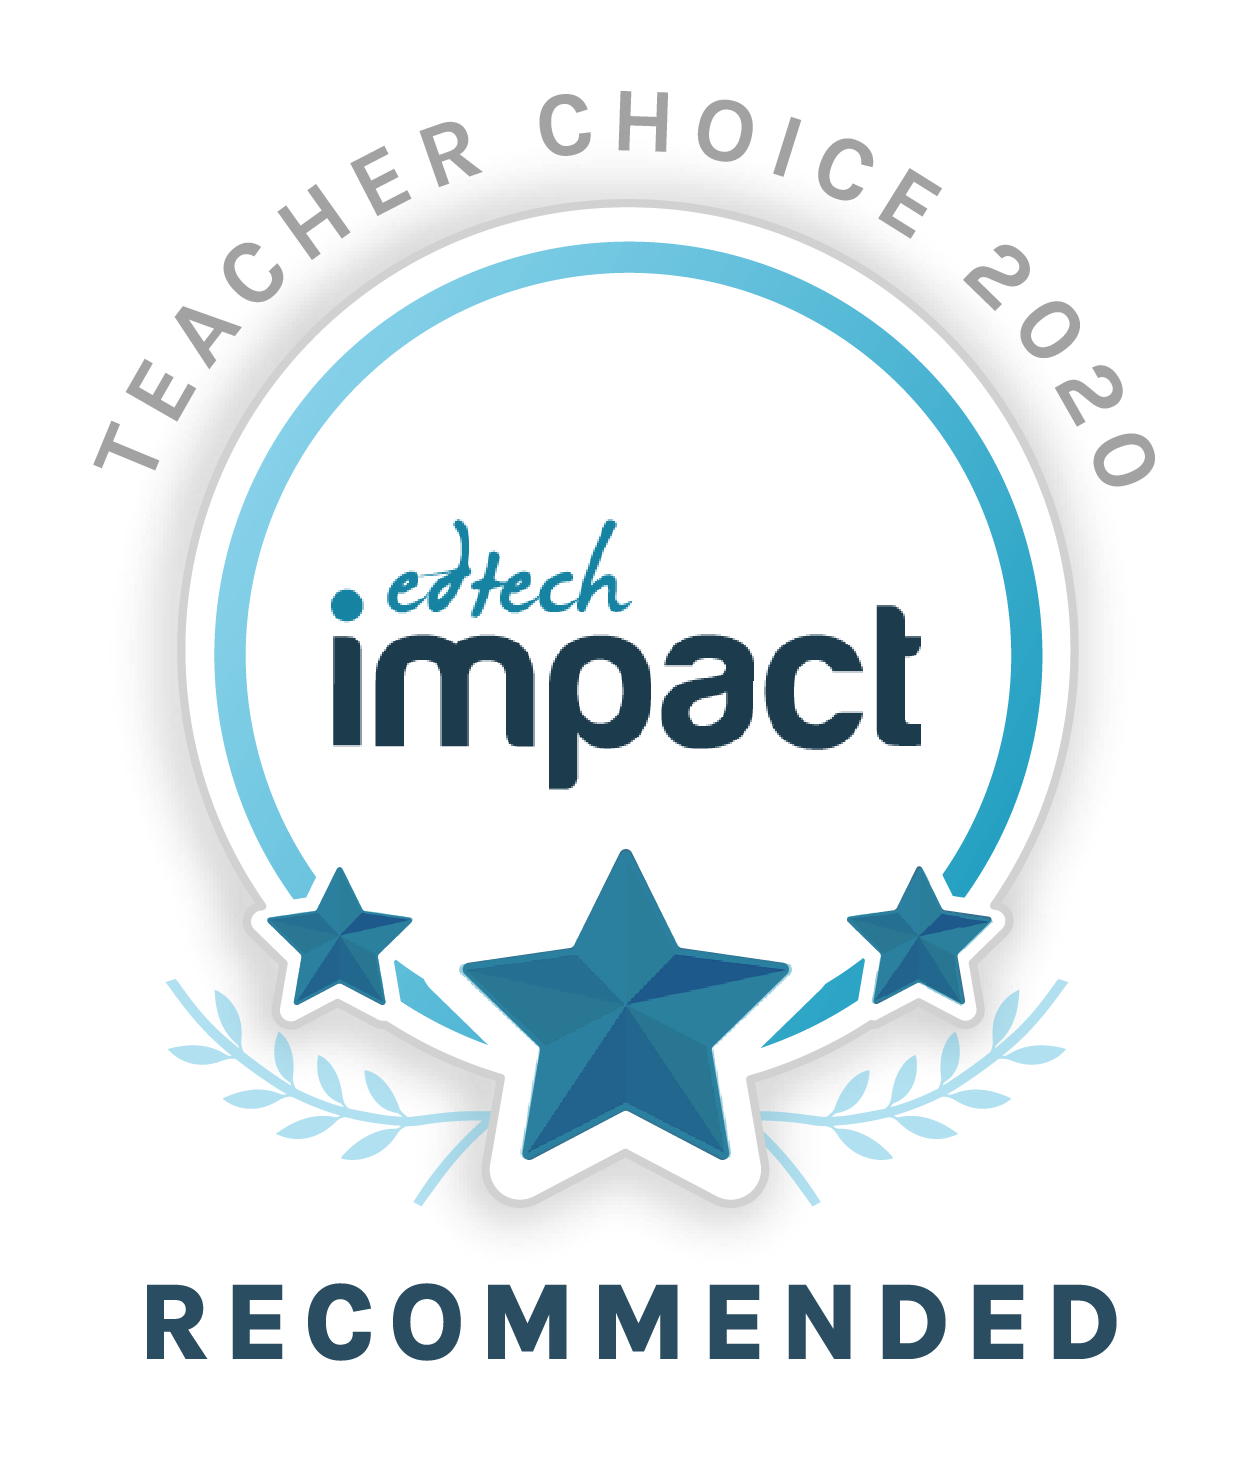 Edtech impact recommended2020 1